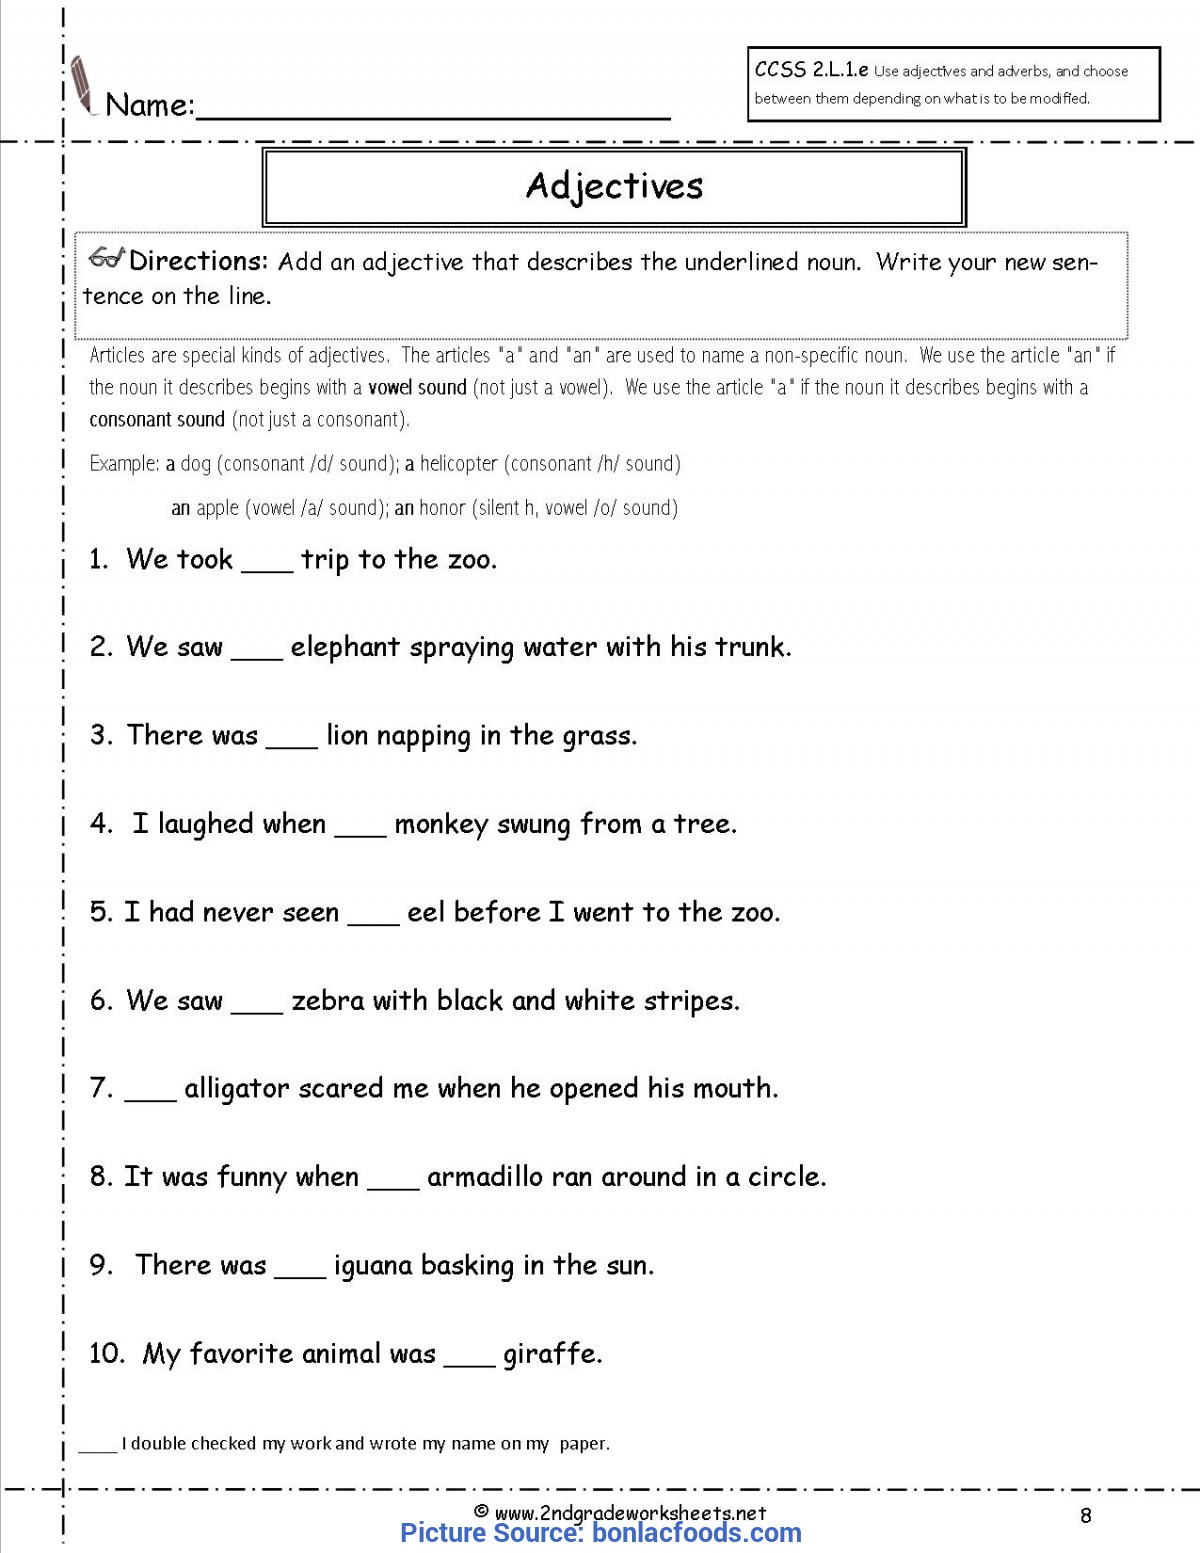 Valuable 2Nd Grade Lesson Plans Adjectives Worksheets For All | Download And Share Worksheets | Free O